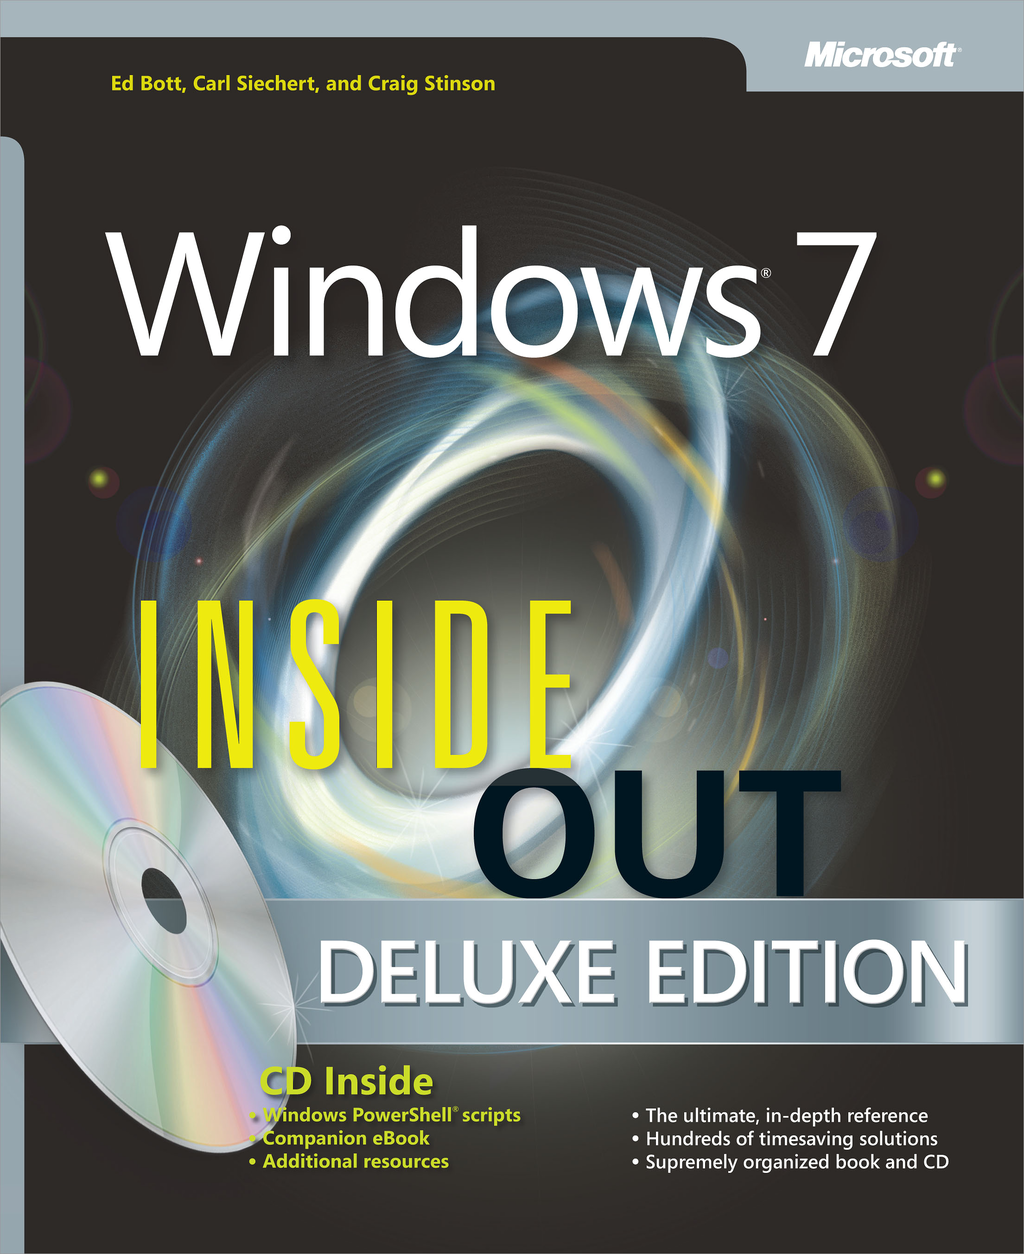 Windows® 7 Inside Out, Deluxe Edition